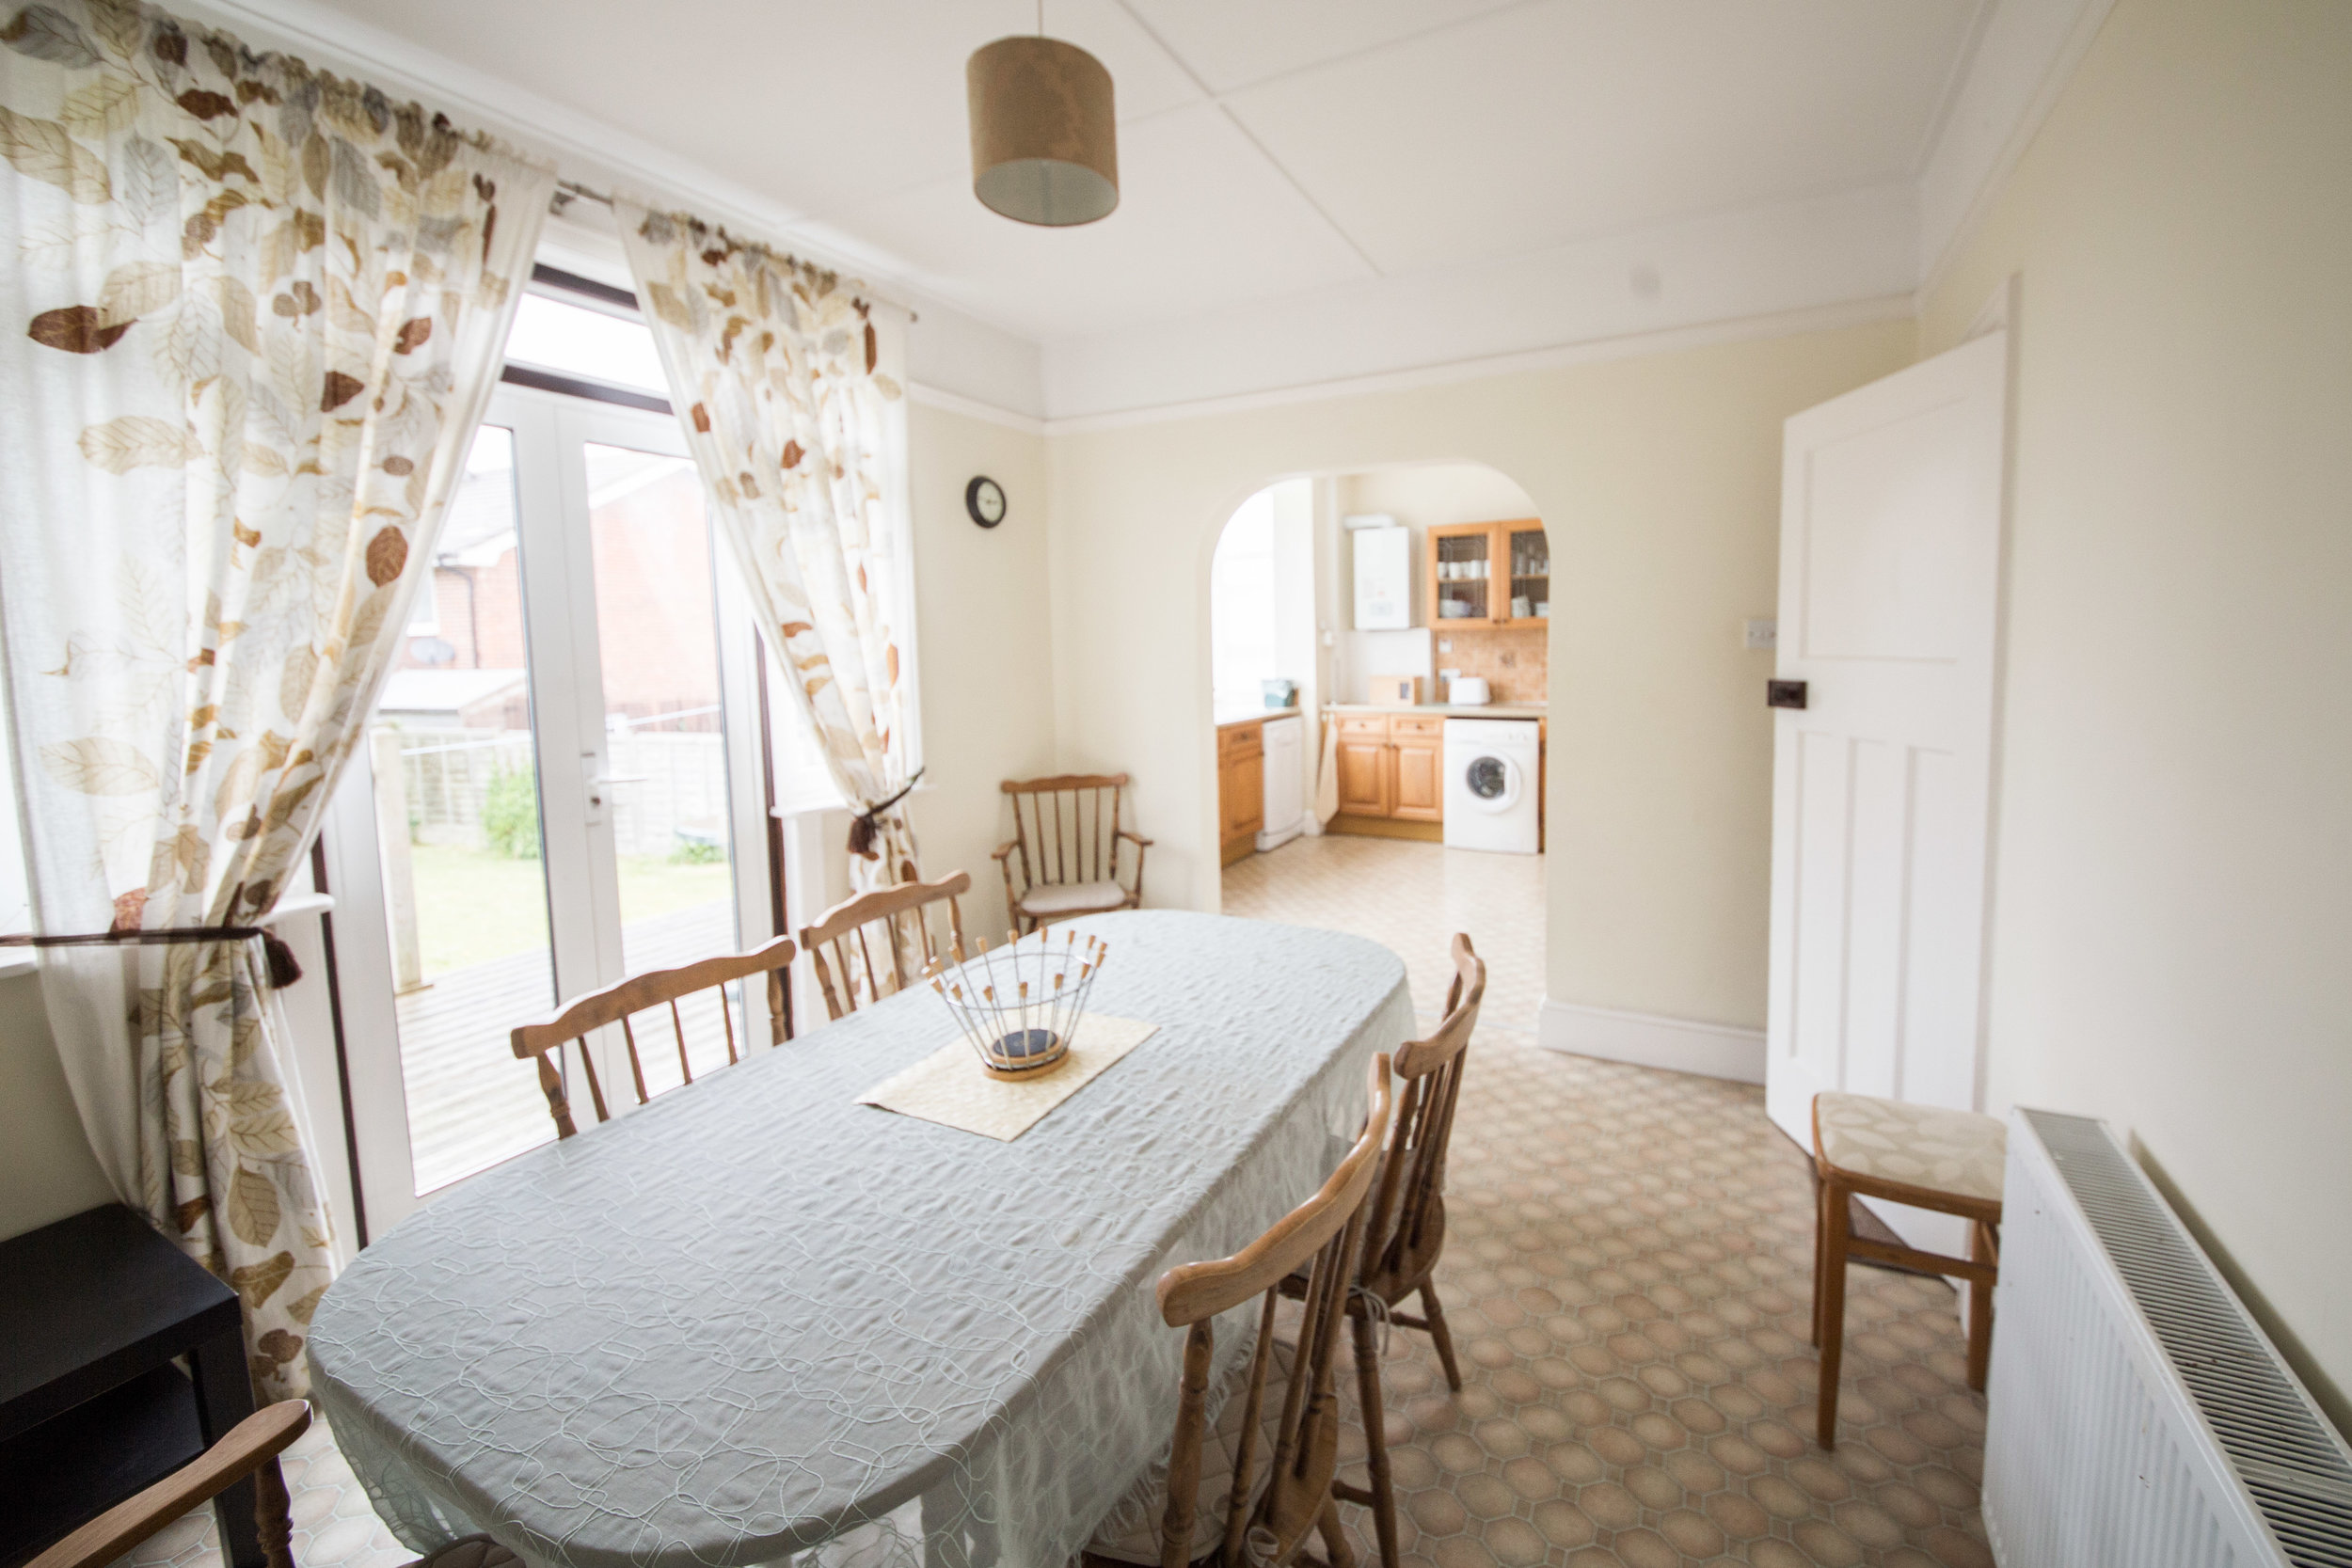 Breakfast room, 3 Bedroom house Sandown, Isle of Wight